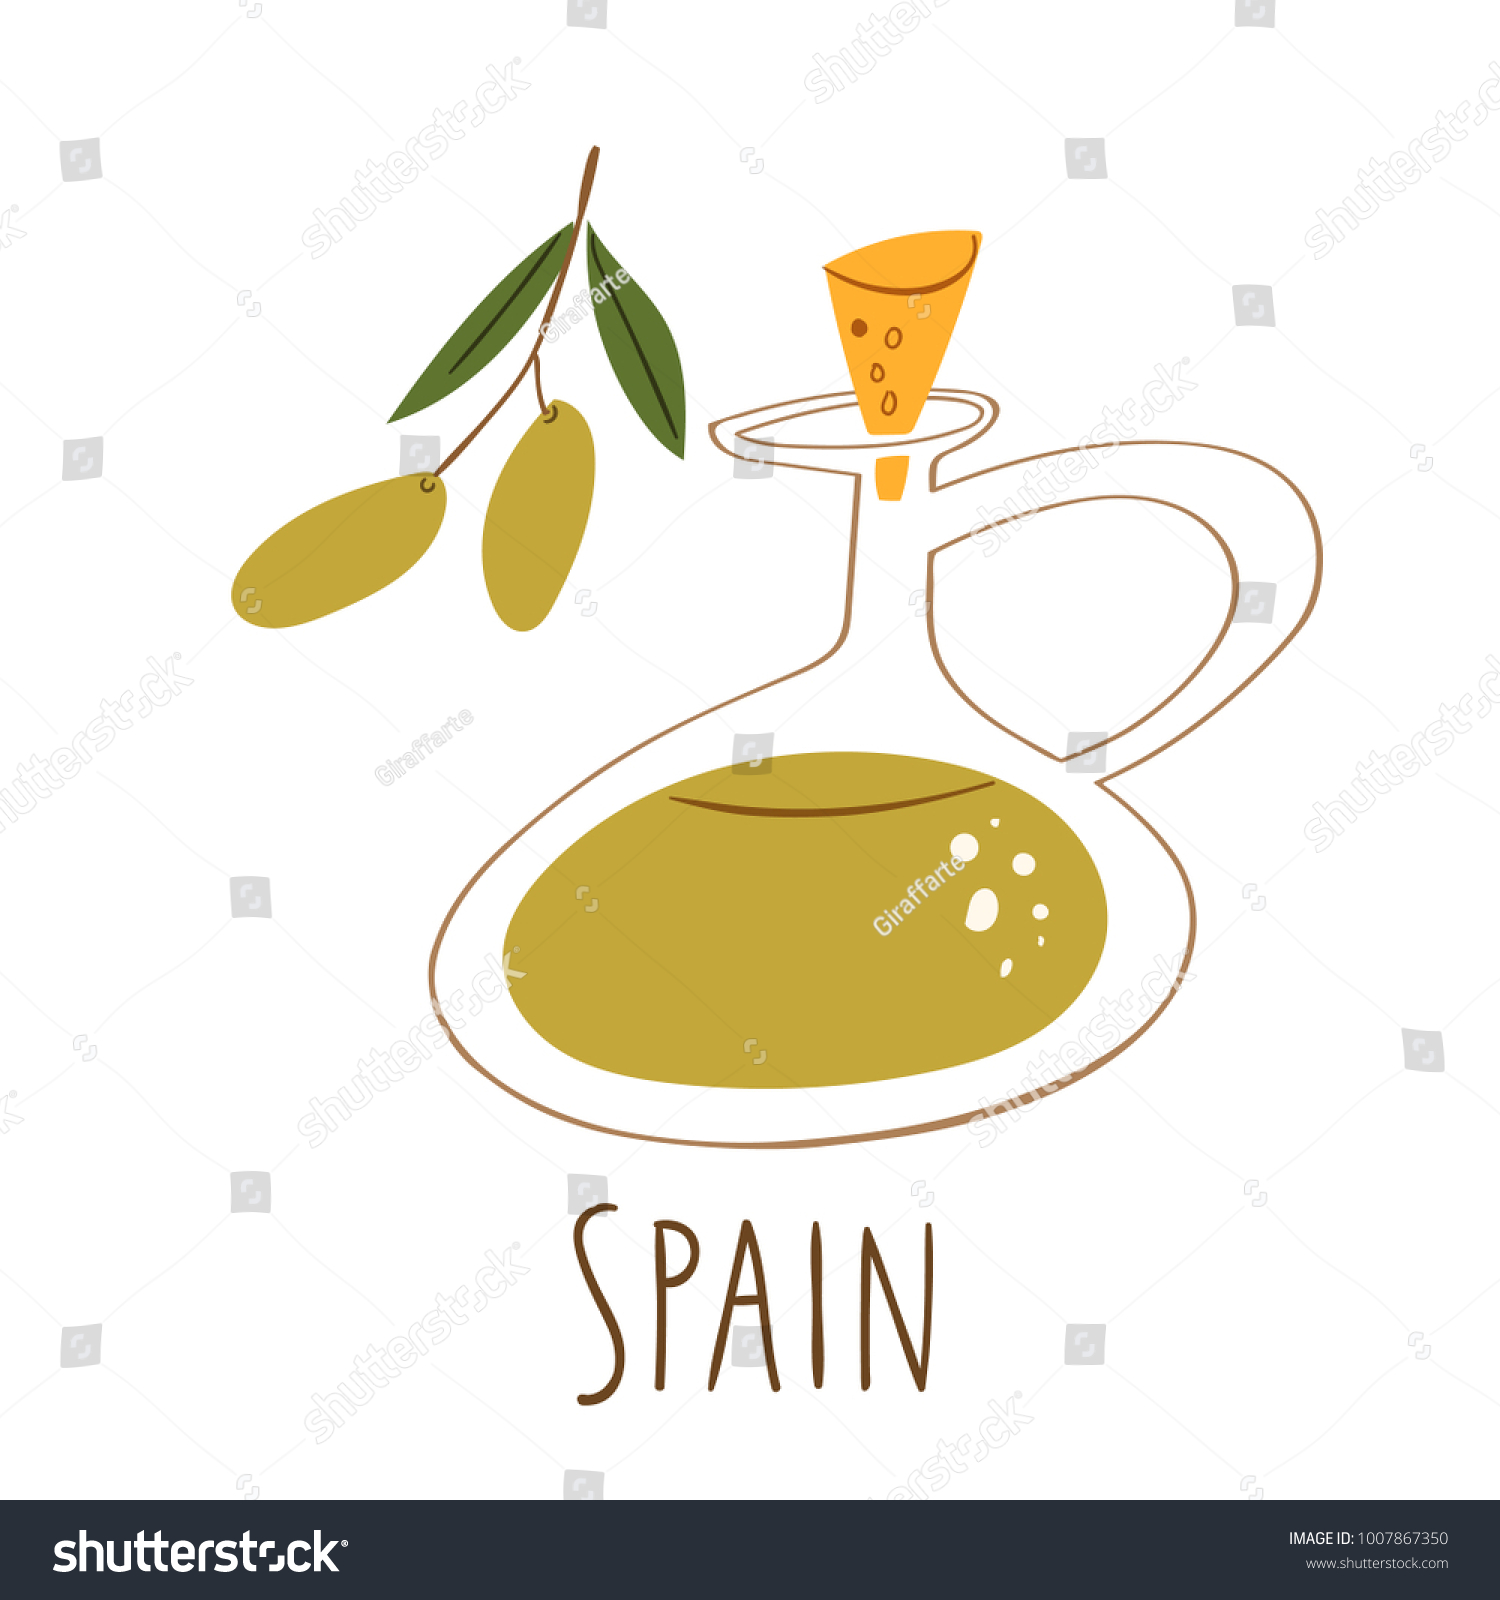 Ticker symbol for oil gallery symbol and sign ideas oil ticker symbols images symbol and sign ideas vector symbols spain bottle olive oil stock vector buycottarizona